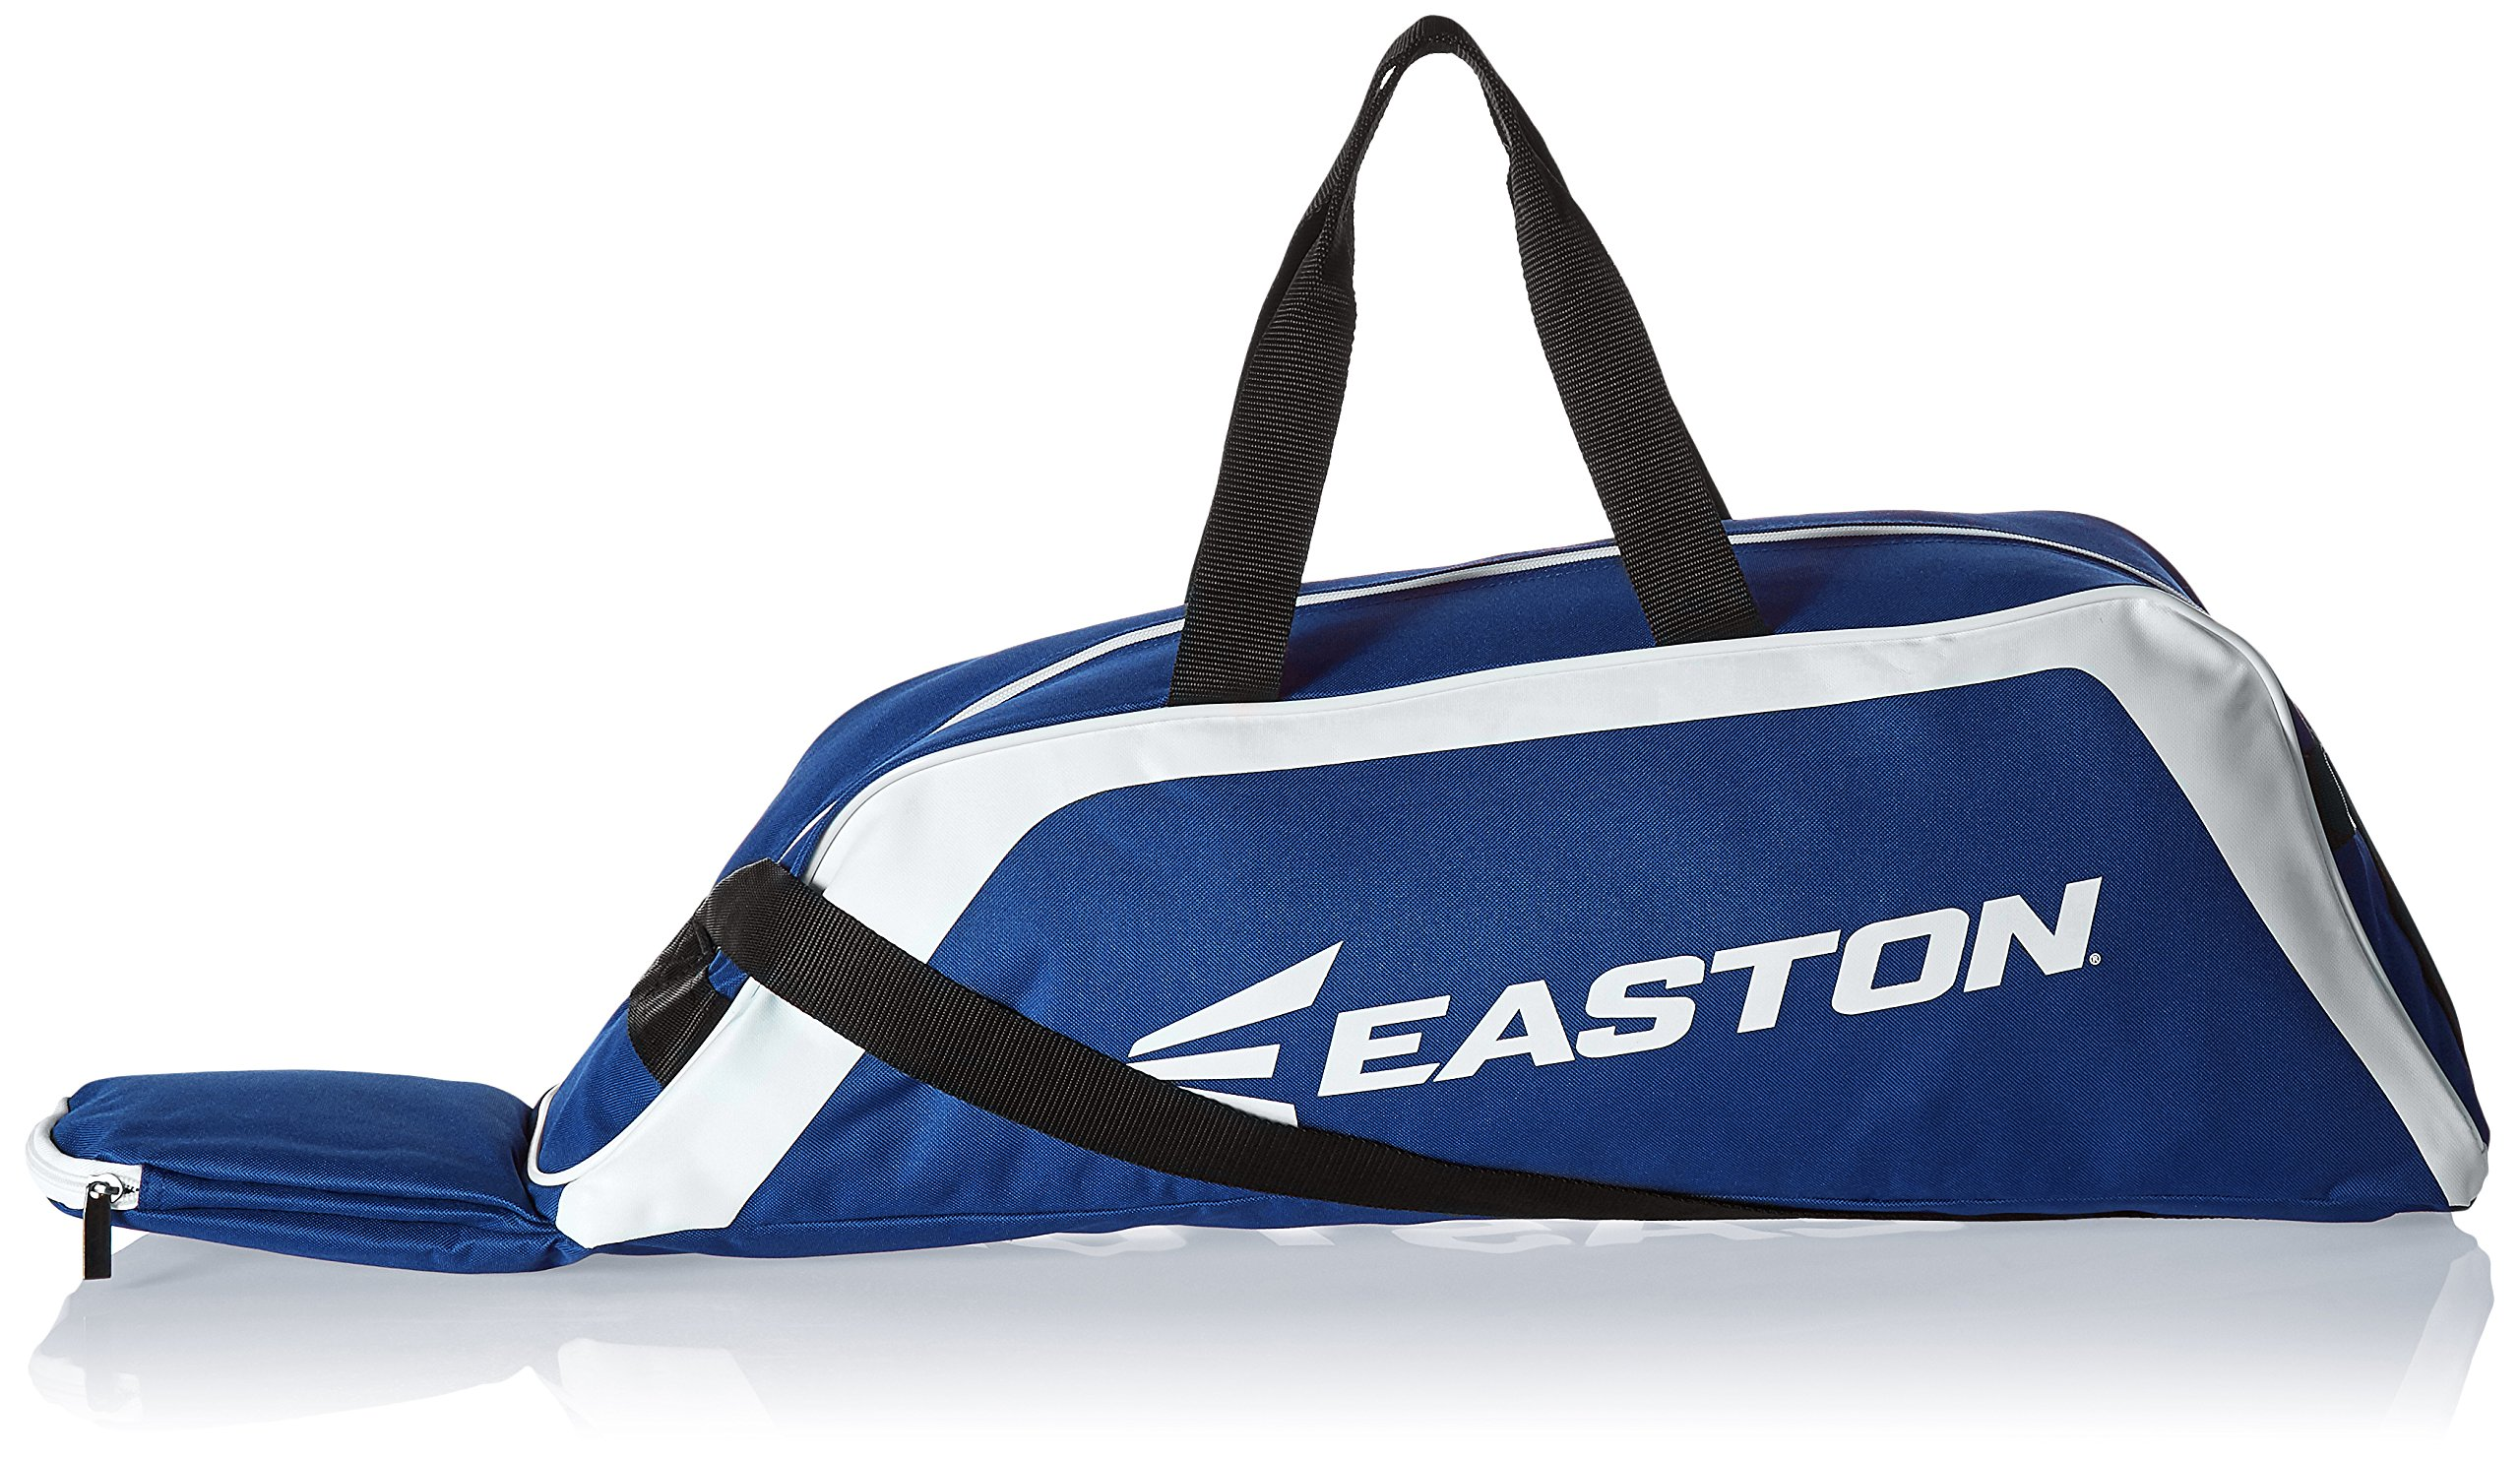 EASTON E100T Youth Bat & Equipment Tote Bag | Baseball Softball | 2019 | Royal | 2 Bat Compartment | Main Gear Compartment | Fence Hook | Shoulder & 2 Handle Straps by Easton